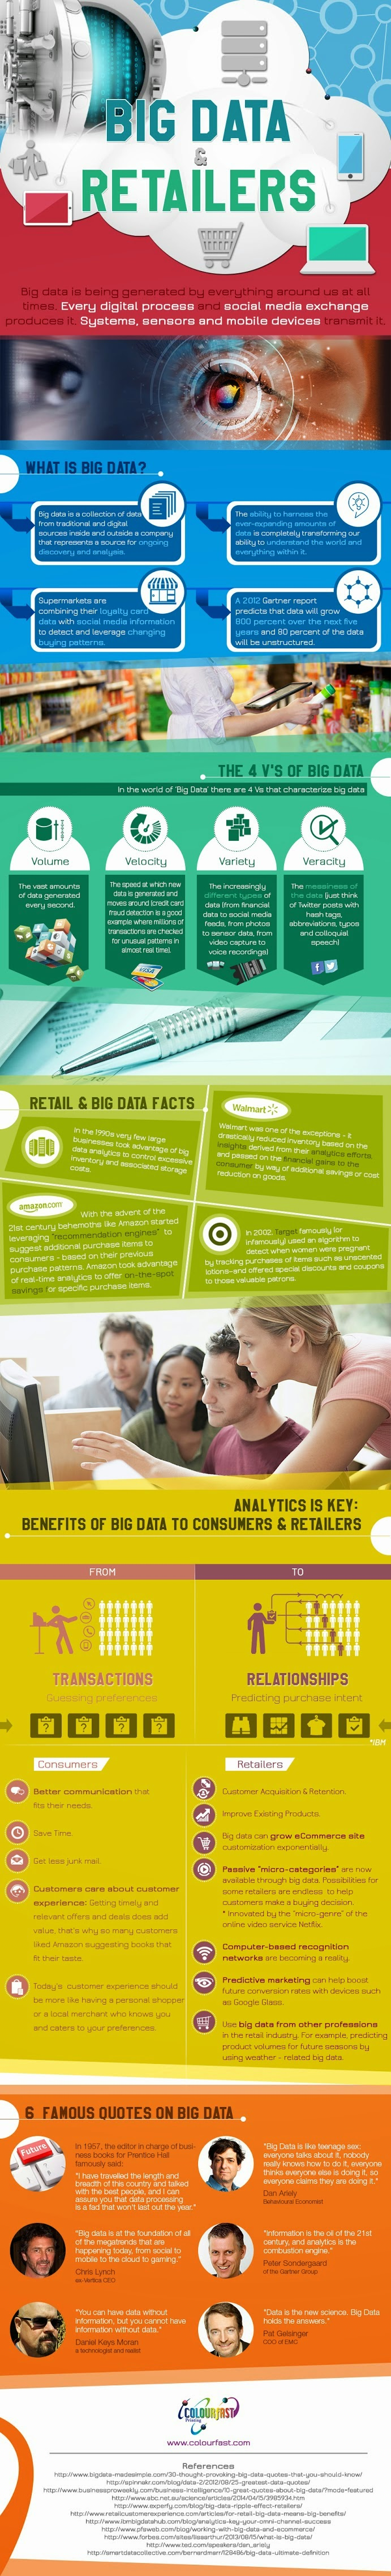 Image of Big Data & Retailers